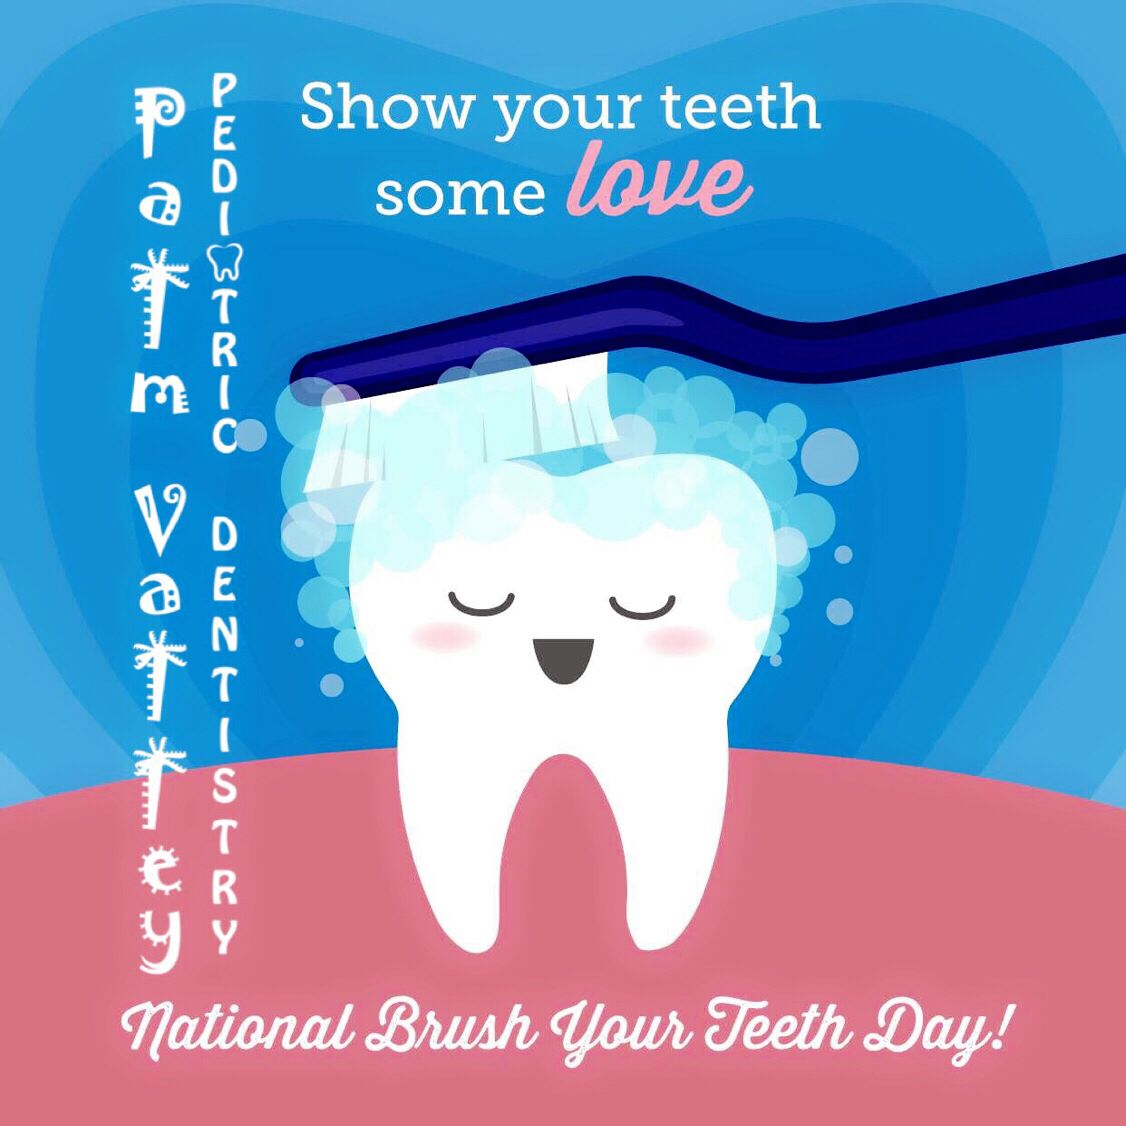 WHEN IS THE MOST important day for brushing your teeth